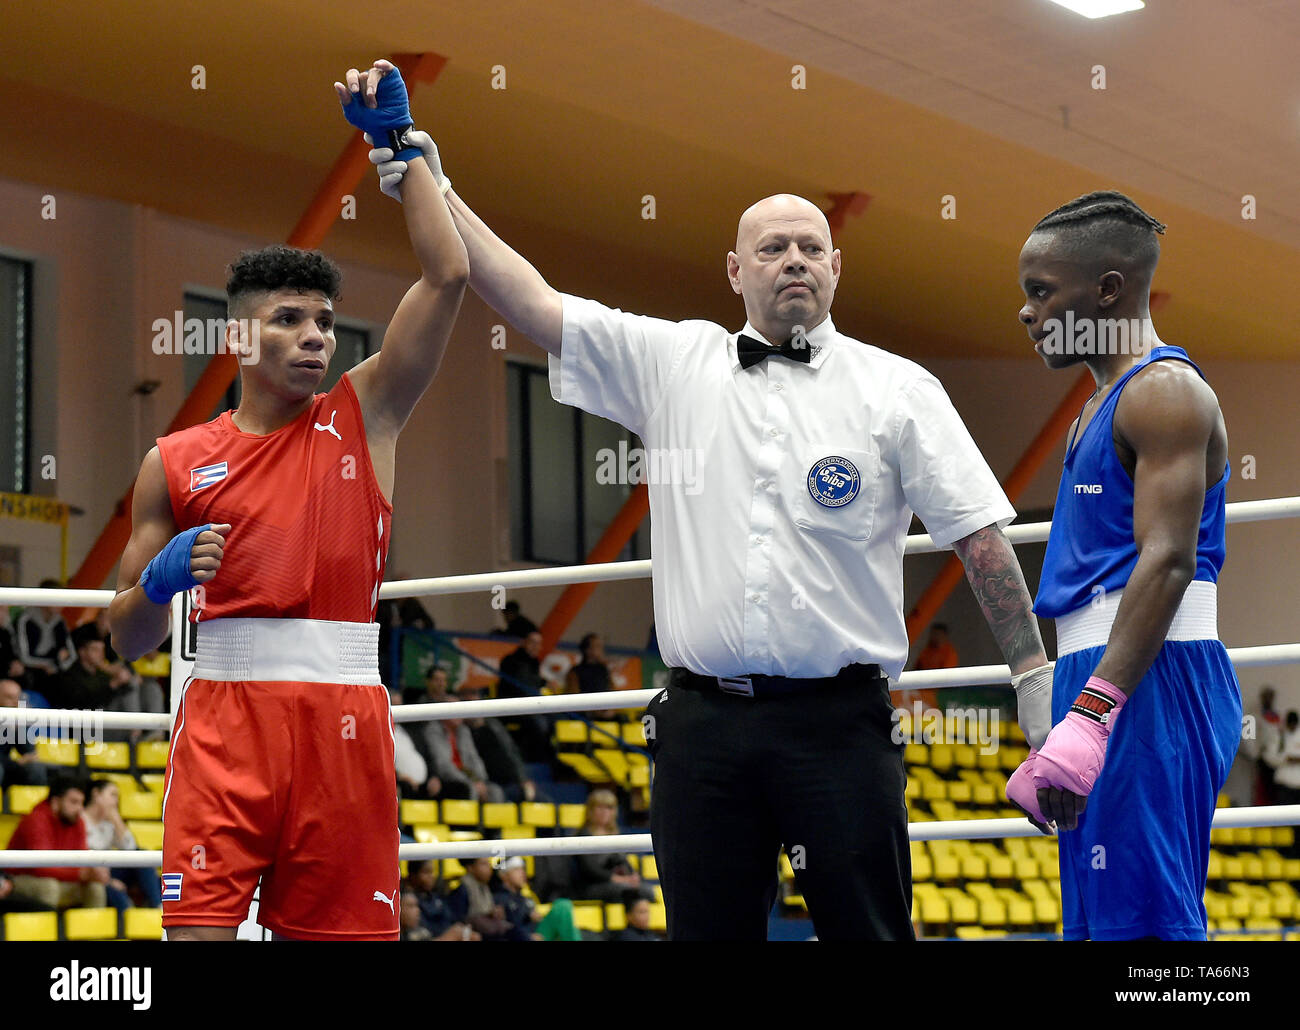 Usti Nad Labem, Czech Republic. 22nd May, 2019. From left YOSBANY VEITIA SOTO of Cuba (winner) and PHILLIP MATOMBO of Canada after the fight in 50th boxing tournament Grand Prix Usti nad Labem, Czech Republic, May 22, 2019. Credit: Ondrej Hajek/CTK Photo/Alamy Live News Stock Photo